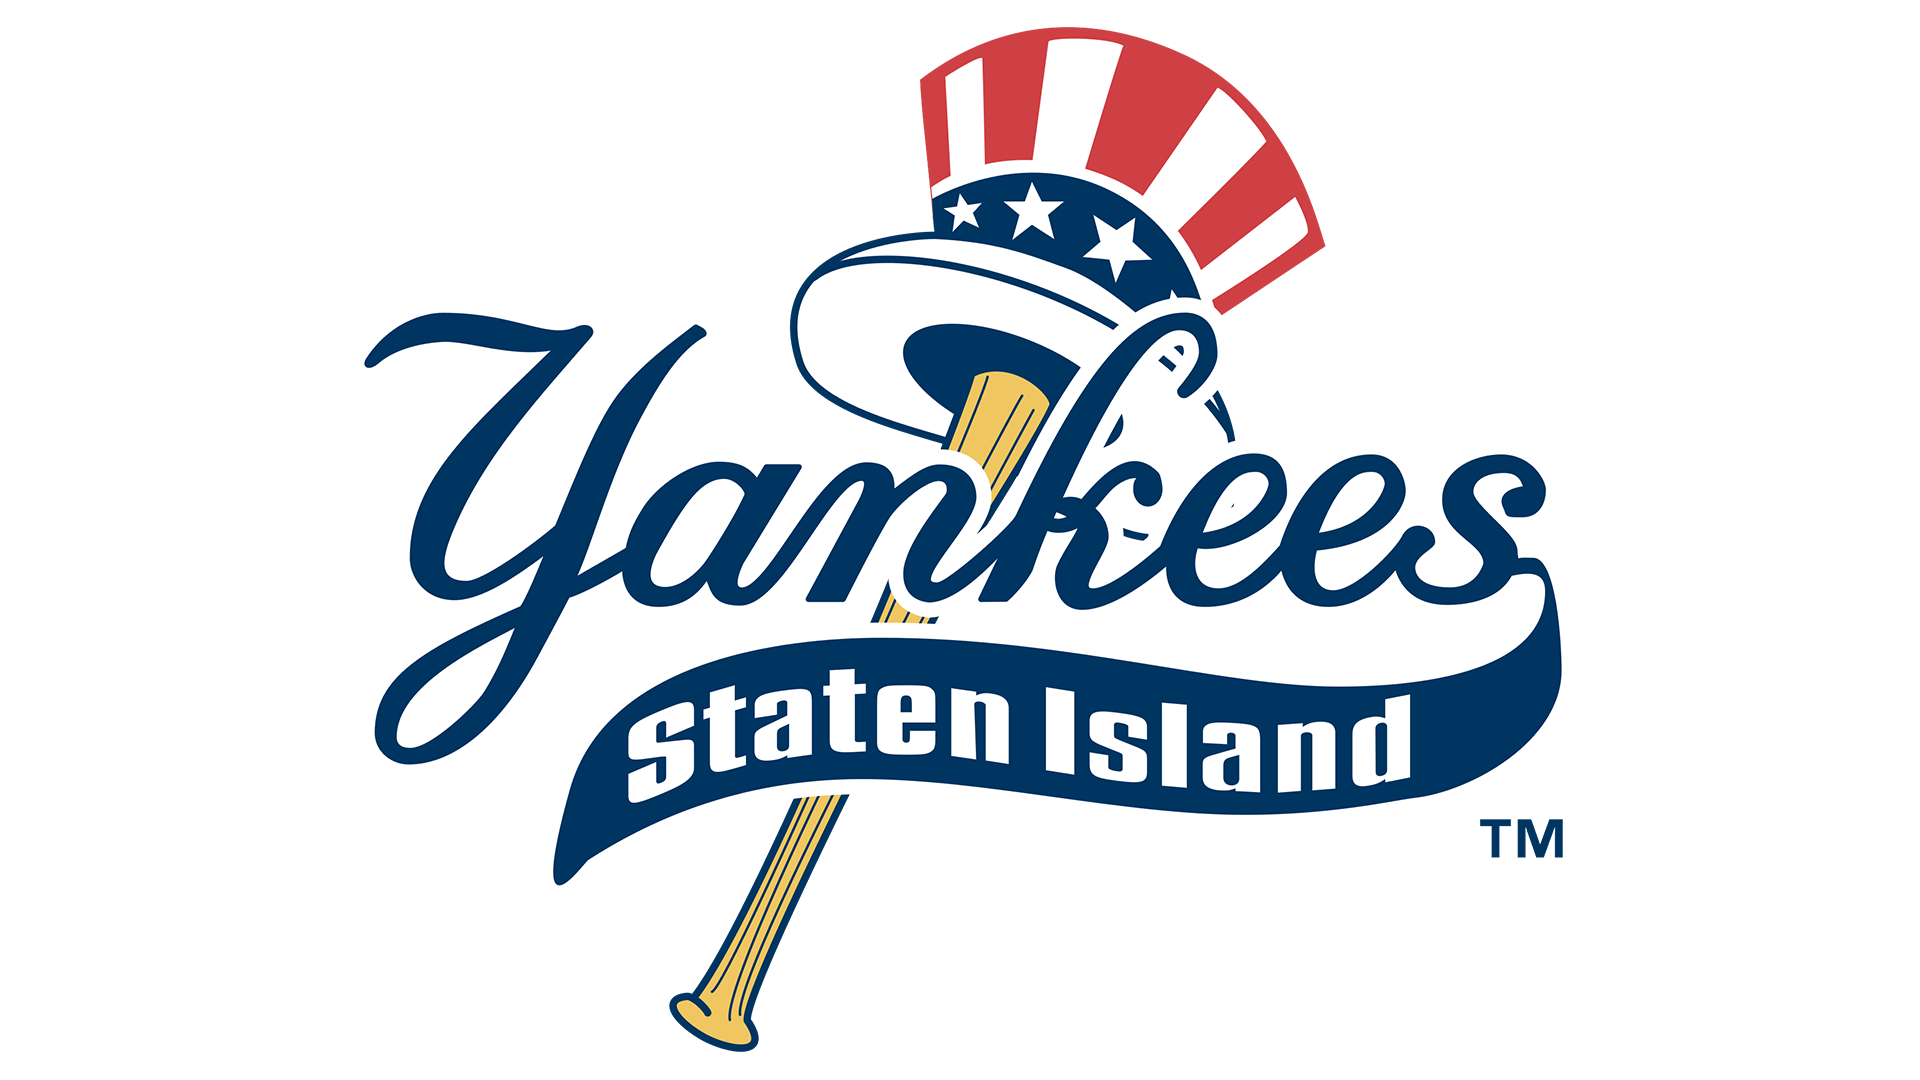 Who Are The Staten Island Yankees Playing Today